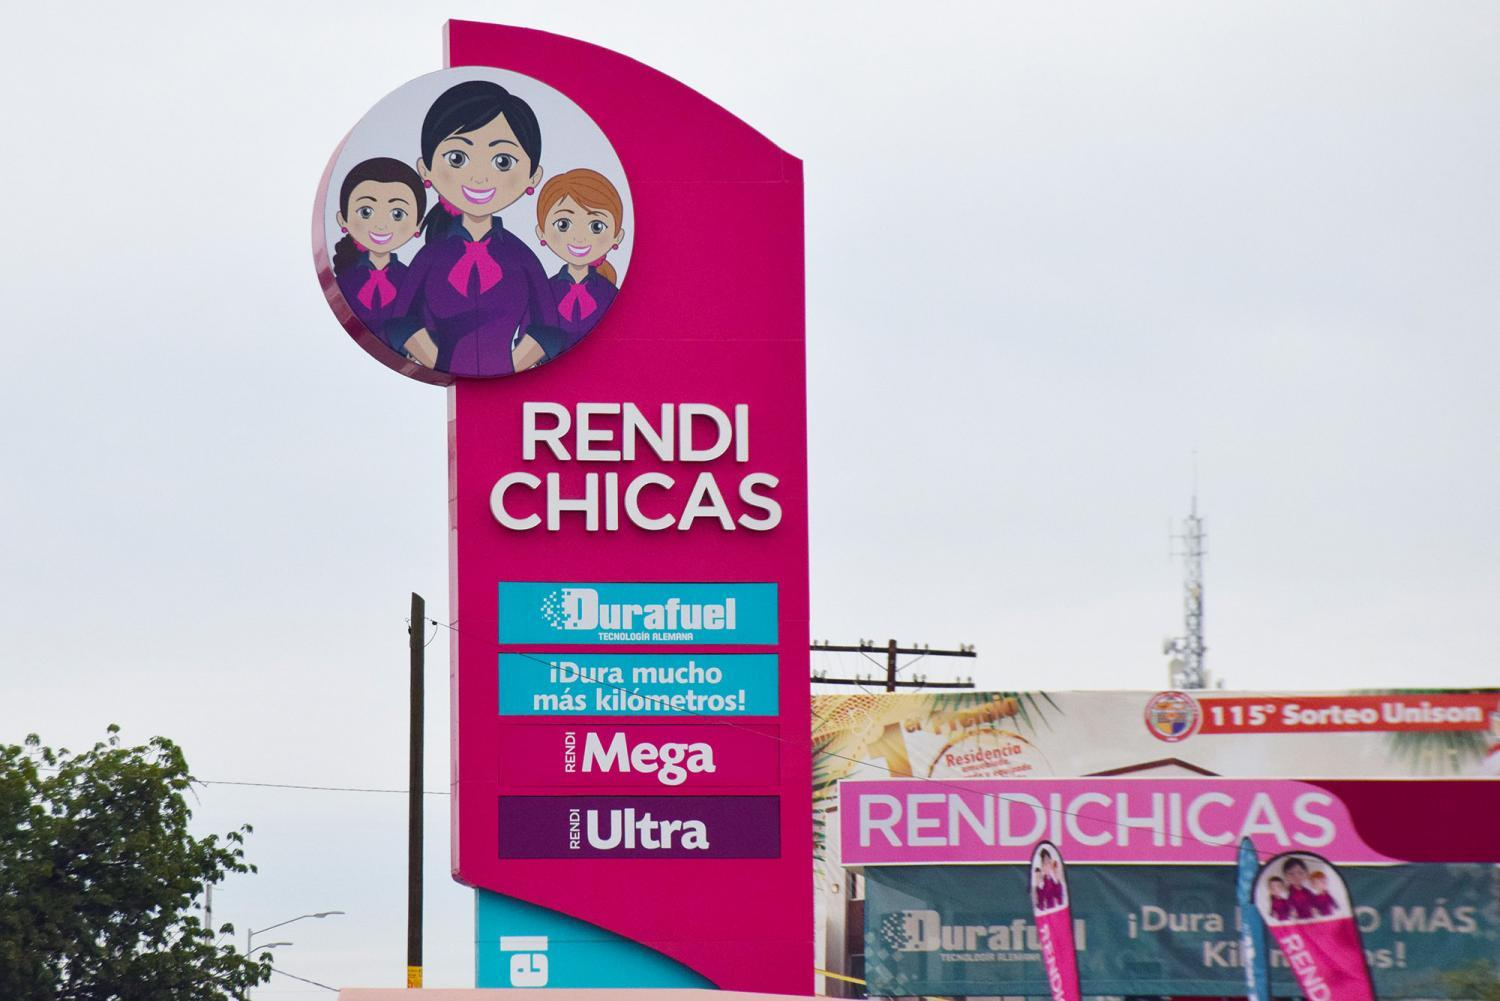 RendiChicas gas station sign